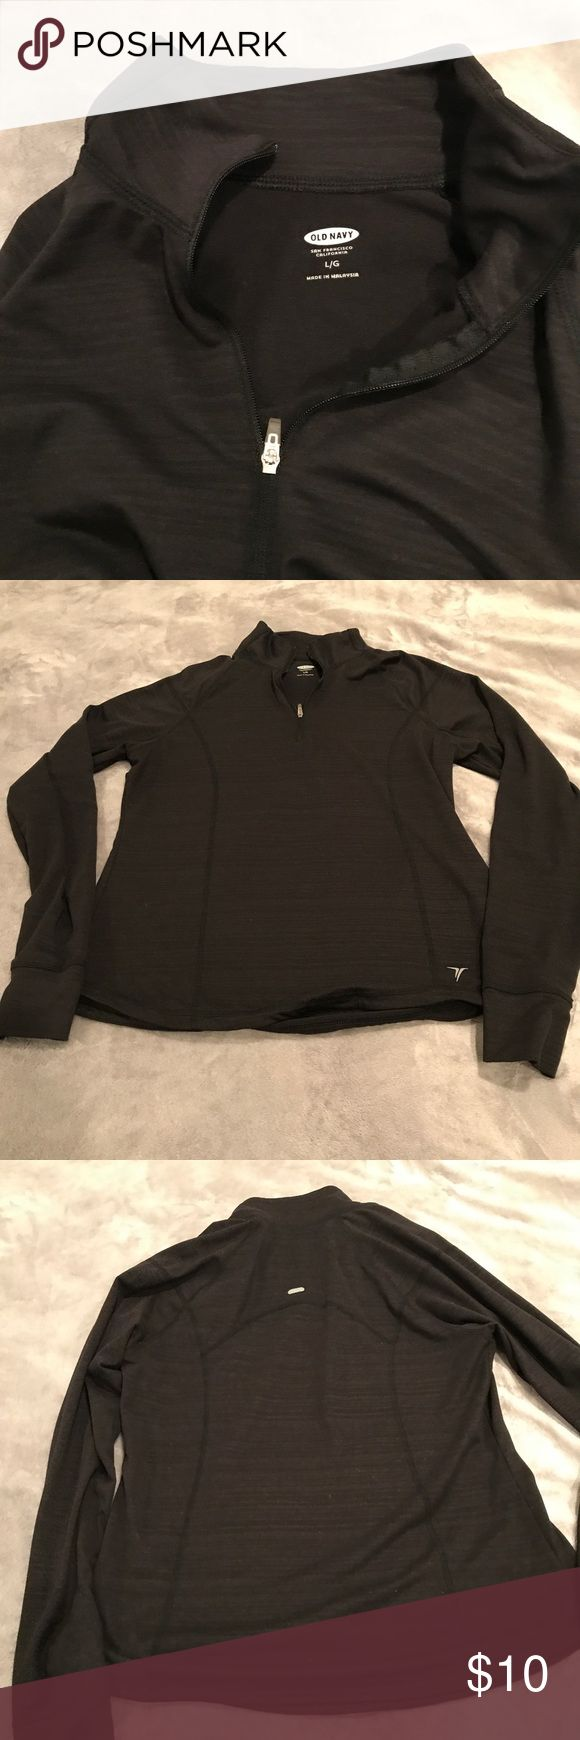 Old navy zip up Black old navy zip up. Old Navy Tops Sweatshirts & Hoodies